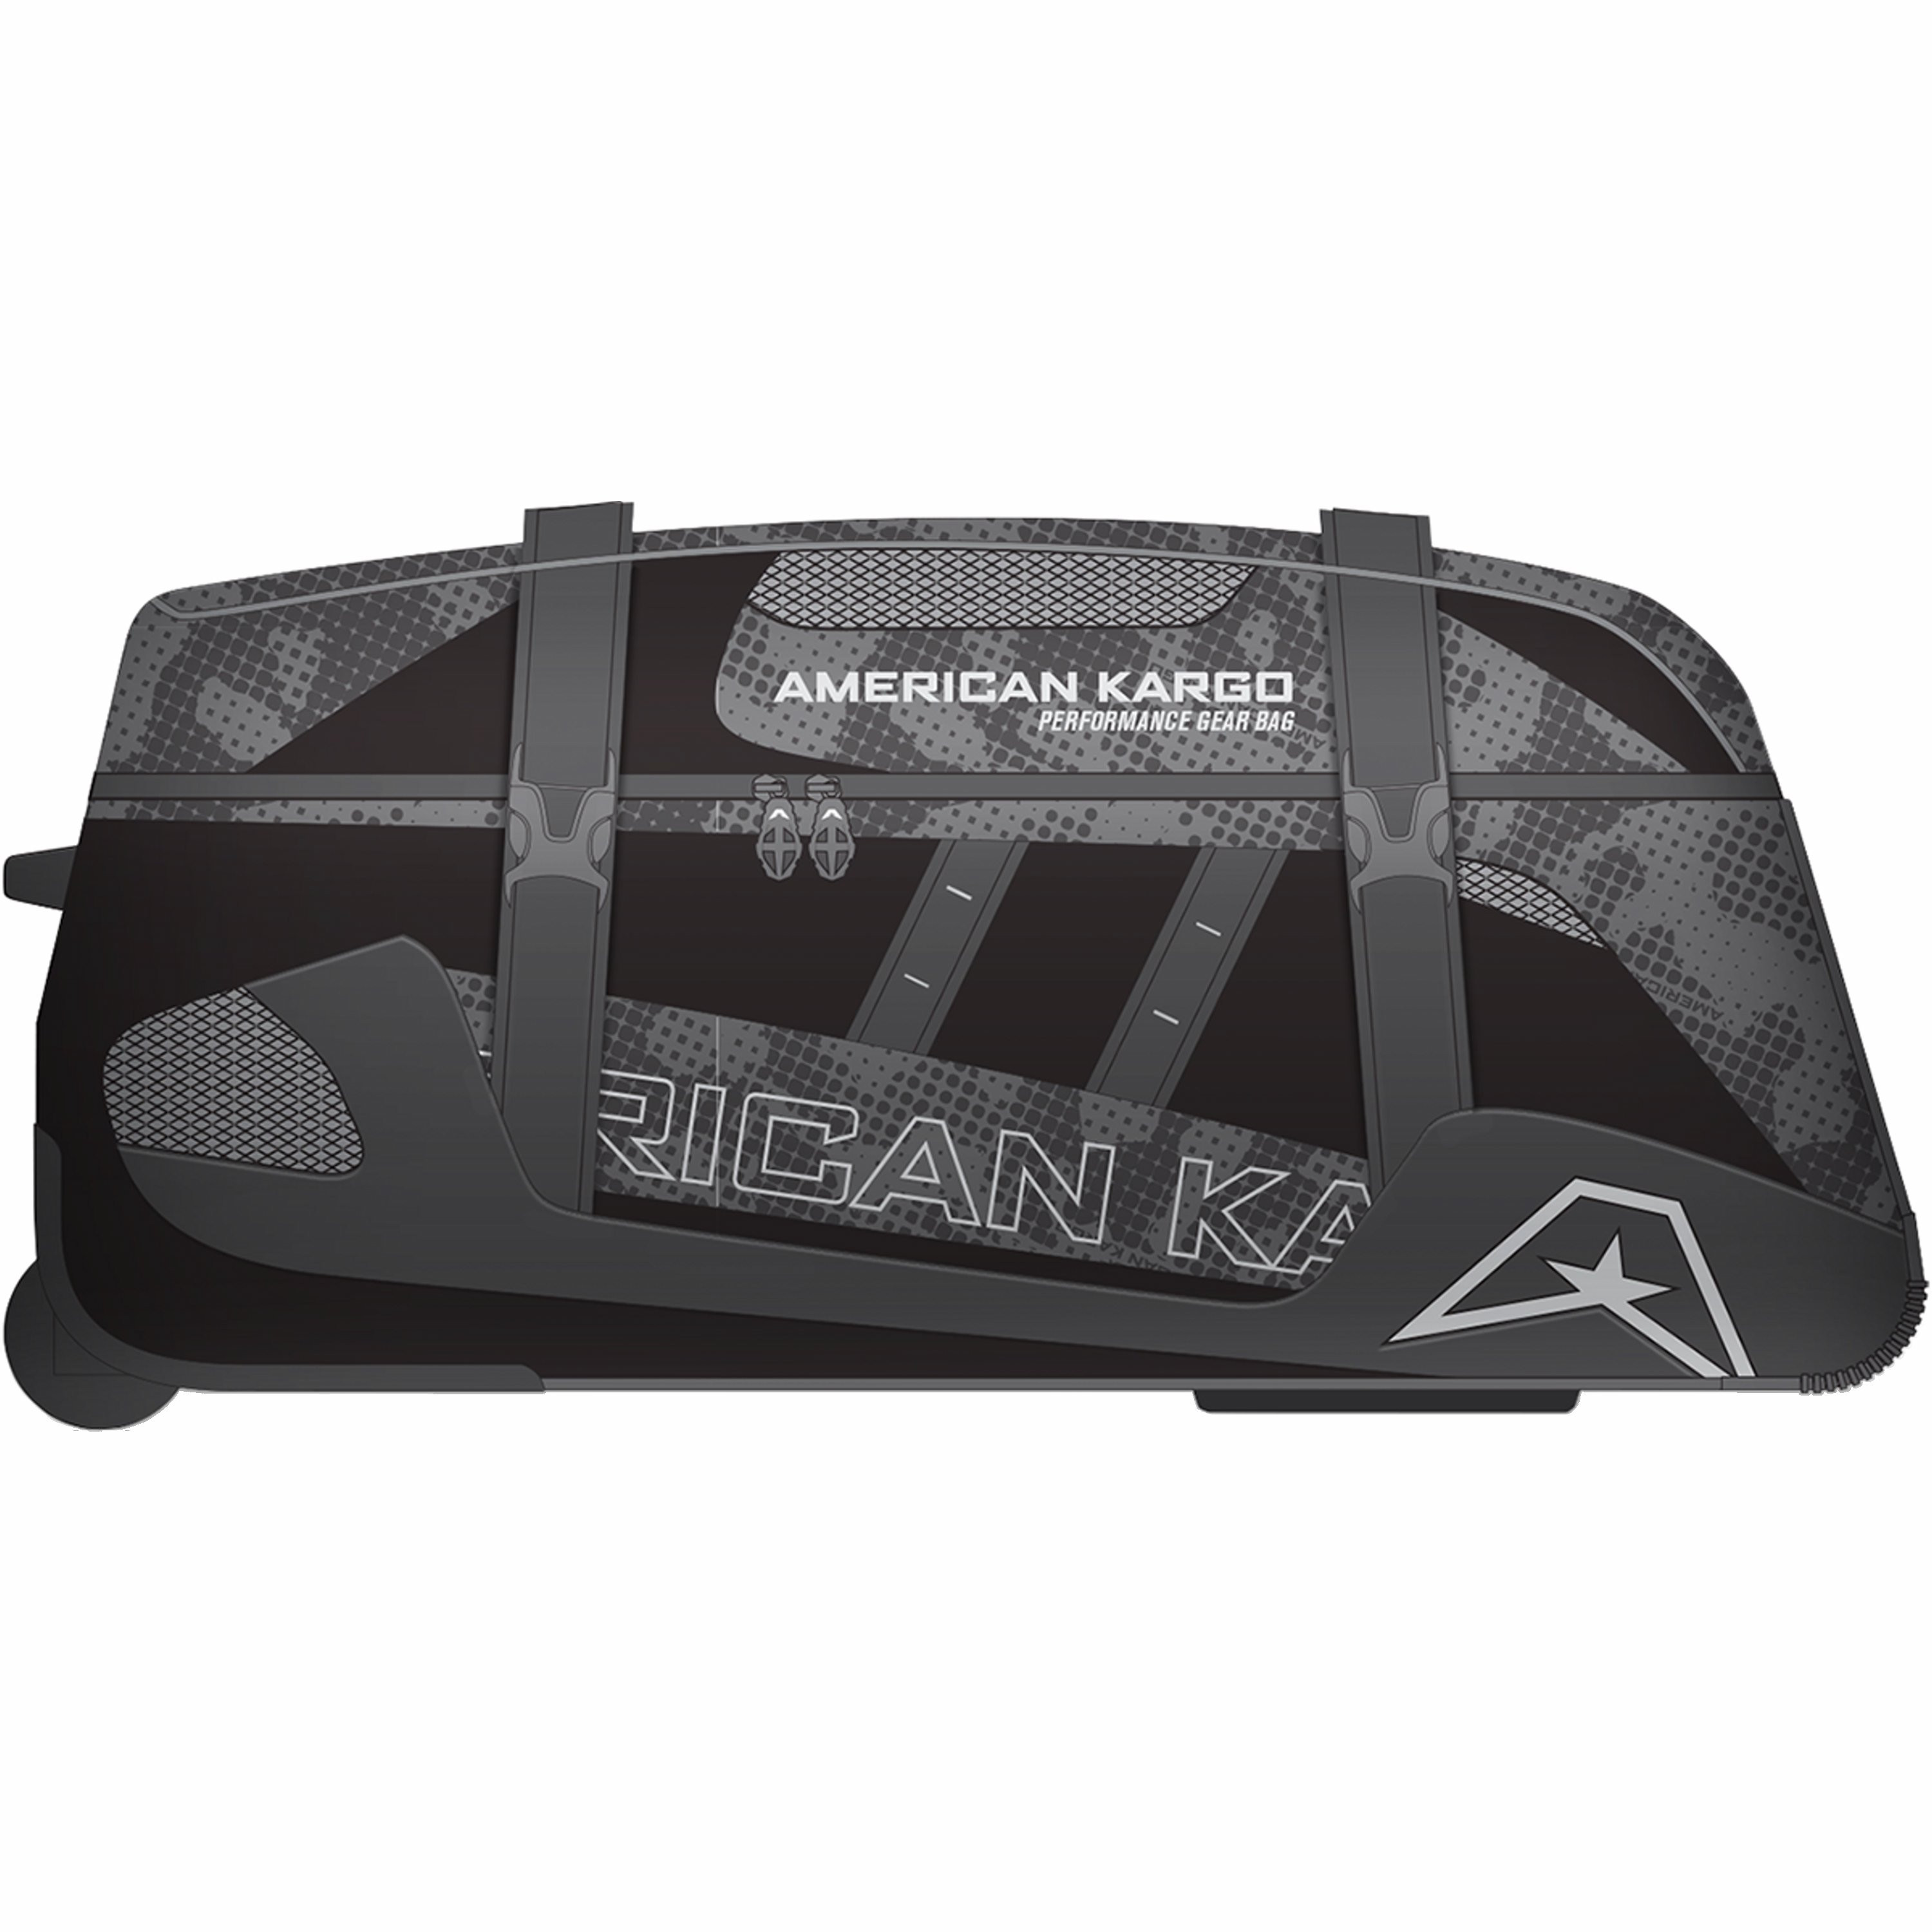 American Cargo GEAR BAG LARGE Roller